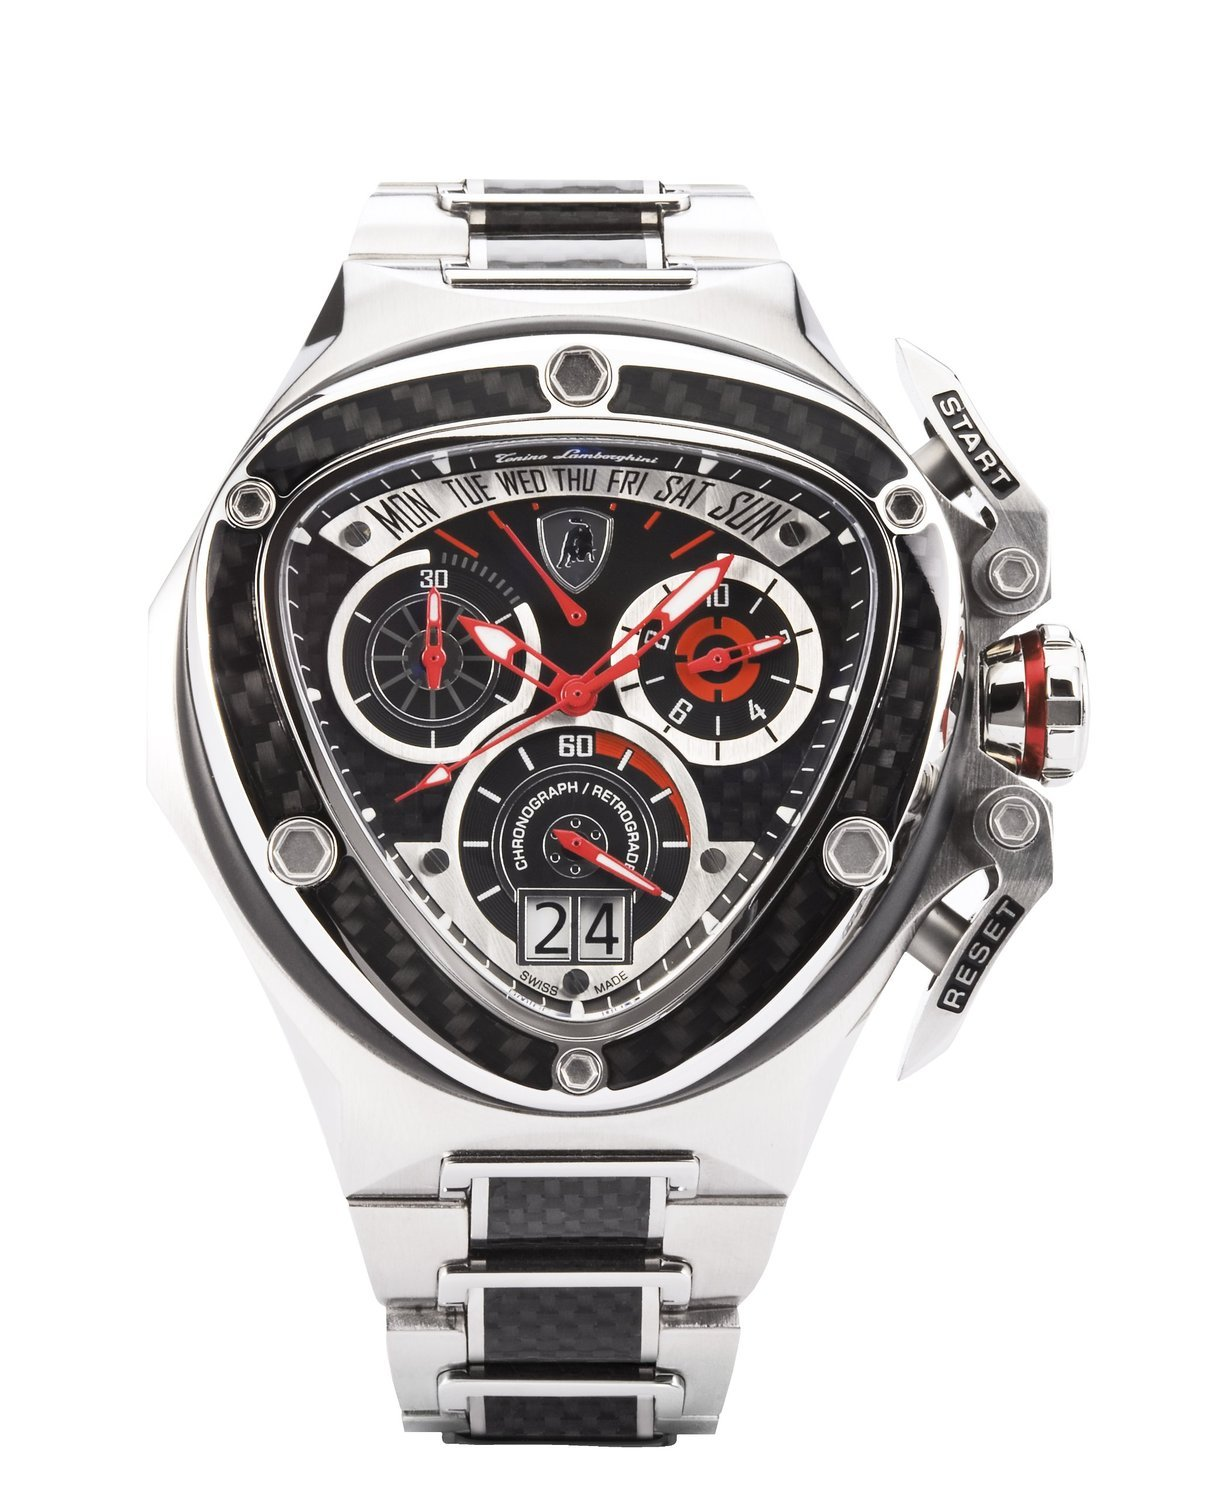 Tonino Lamborghini 3019 Spyder Chronograph Watch by Tonino Lamborghini